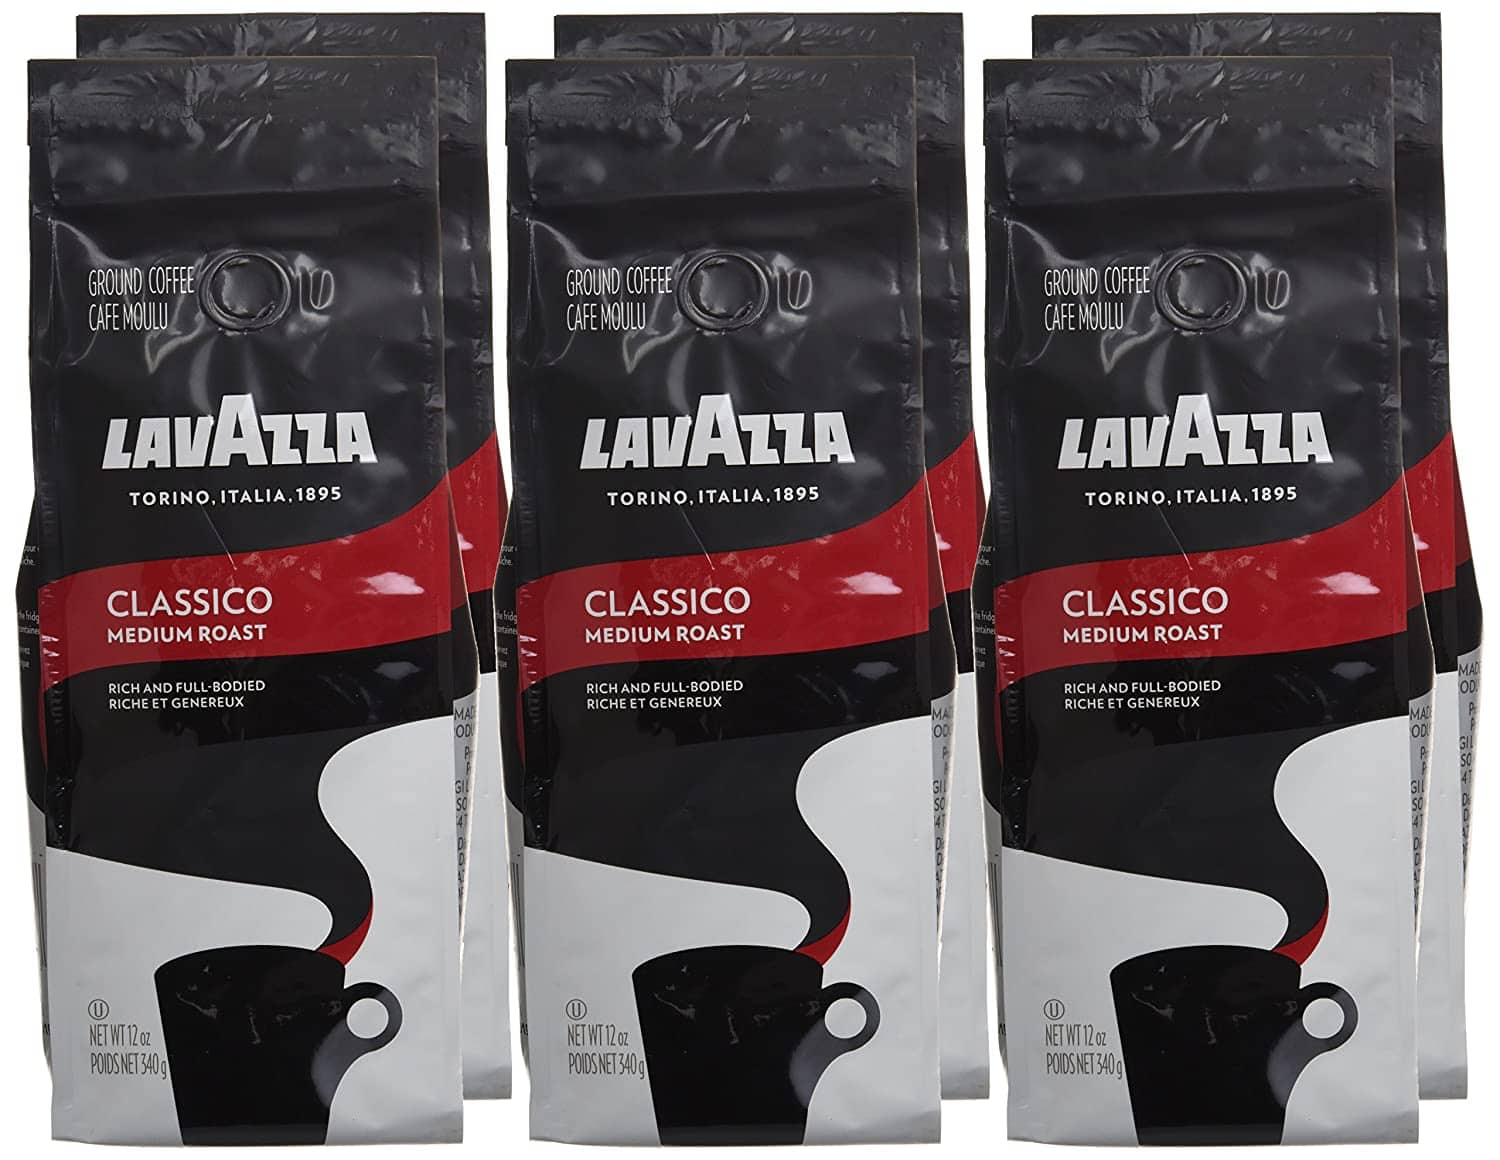 6-Count 12-Oz LavAzza Classico Medium Roast Ground Coffee Blend $28 & More w/s&s